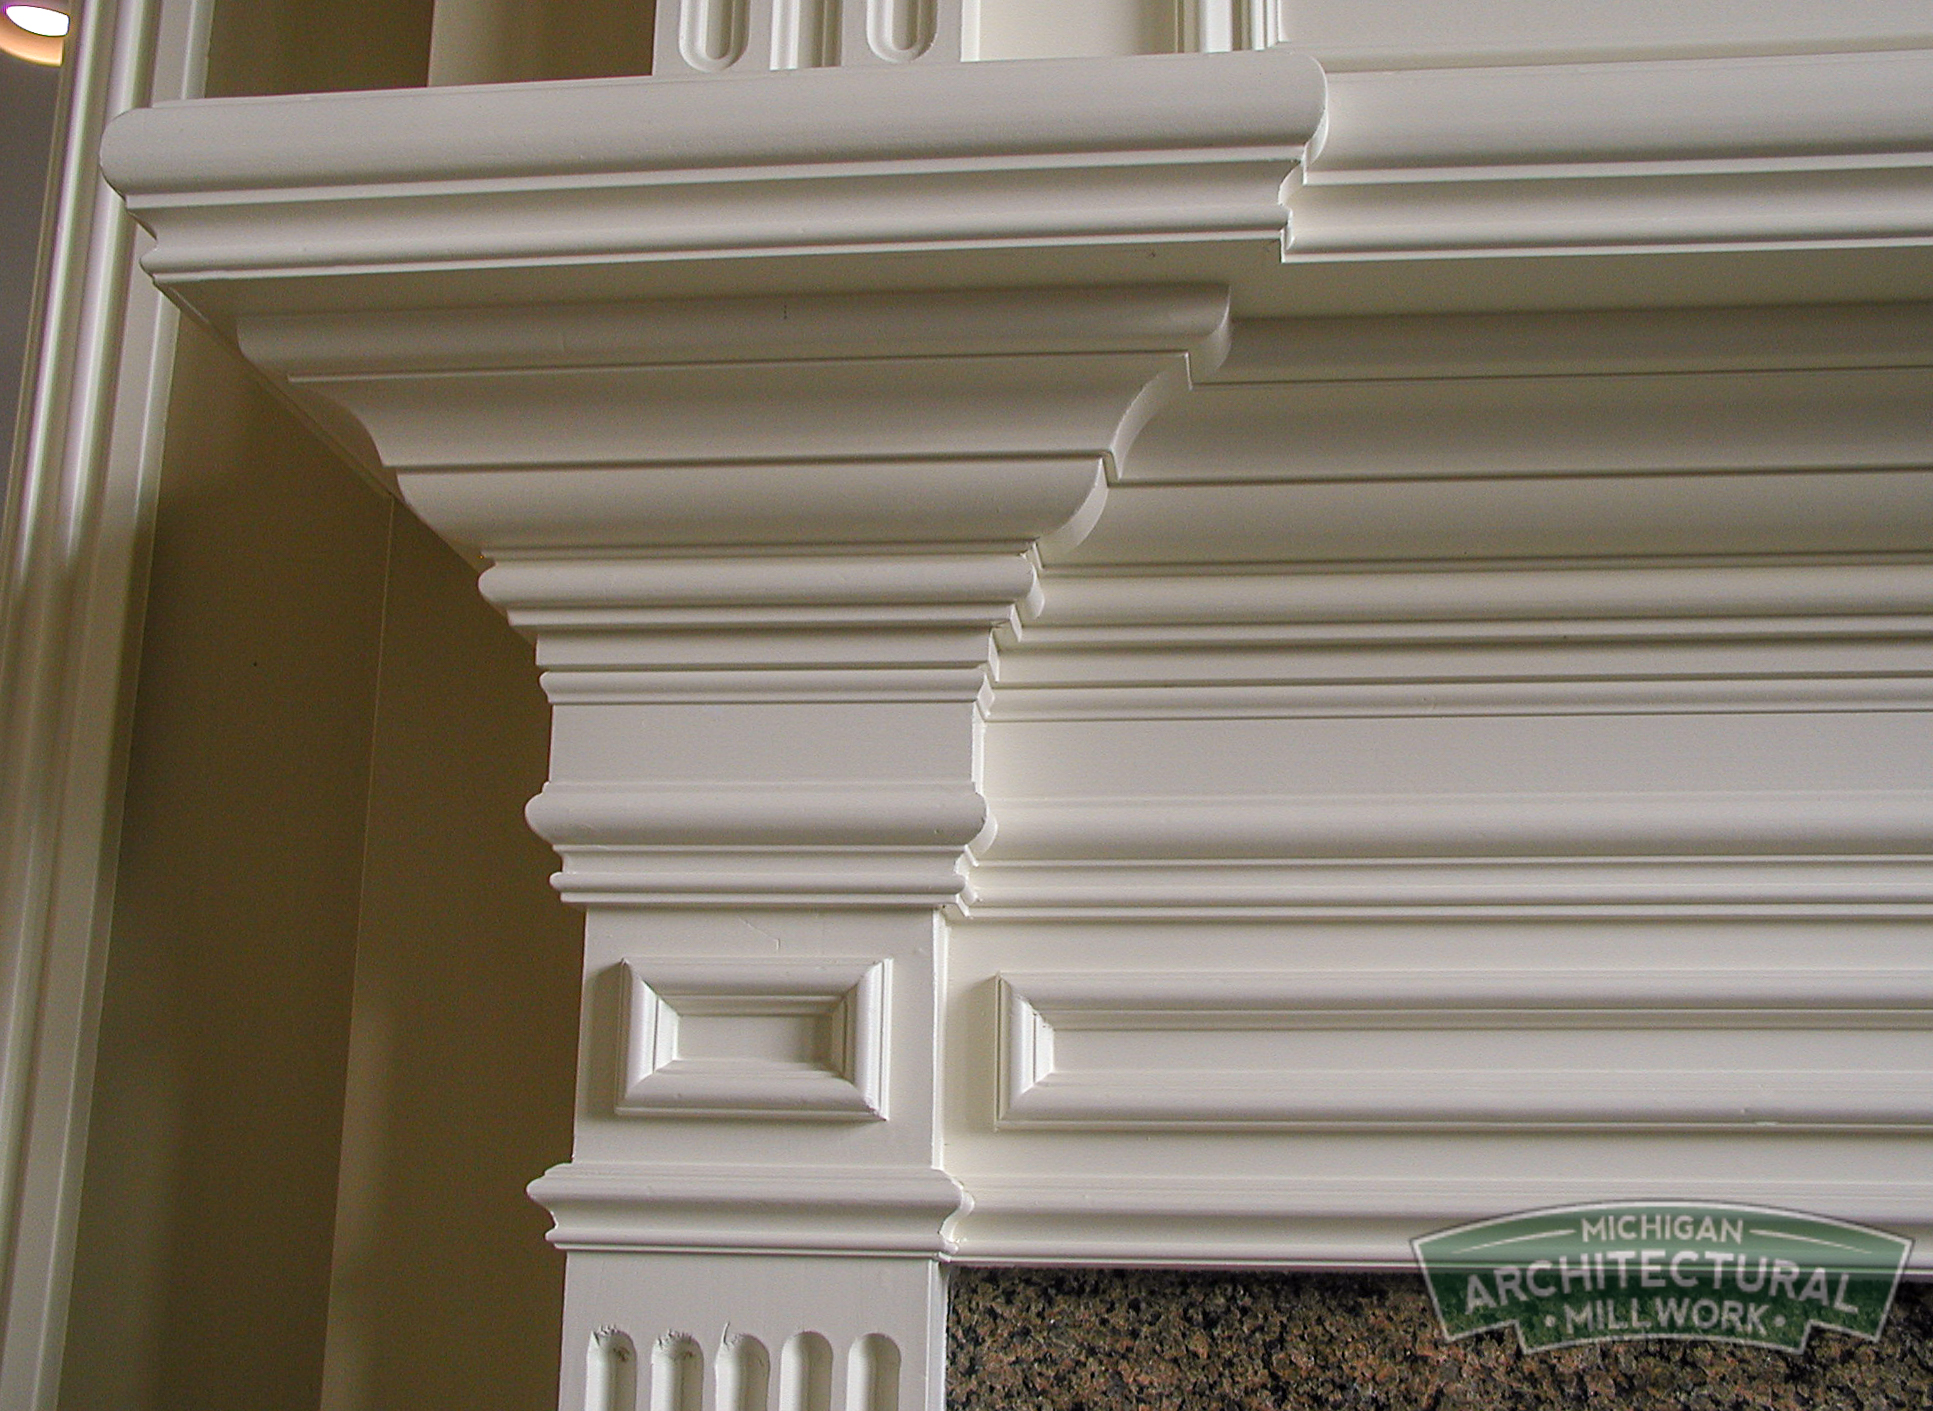 Michigan Architectural Millwork- Moulding and Millwork Photo-204.jpg